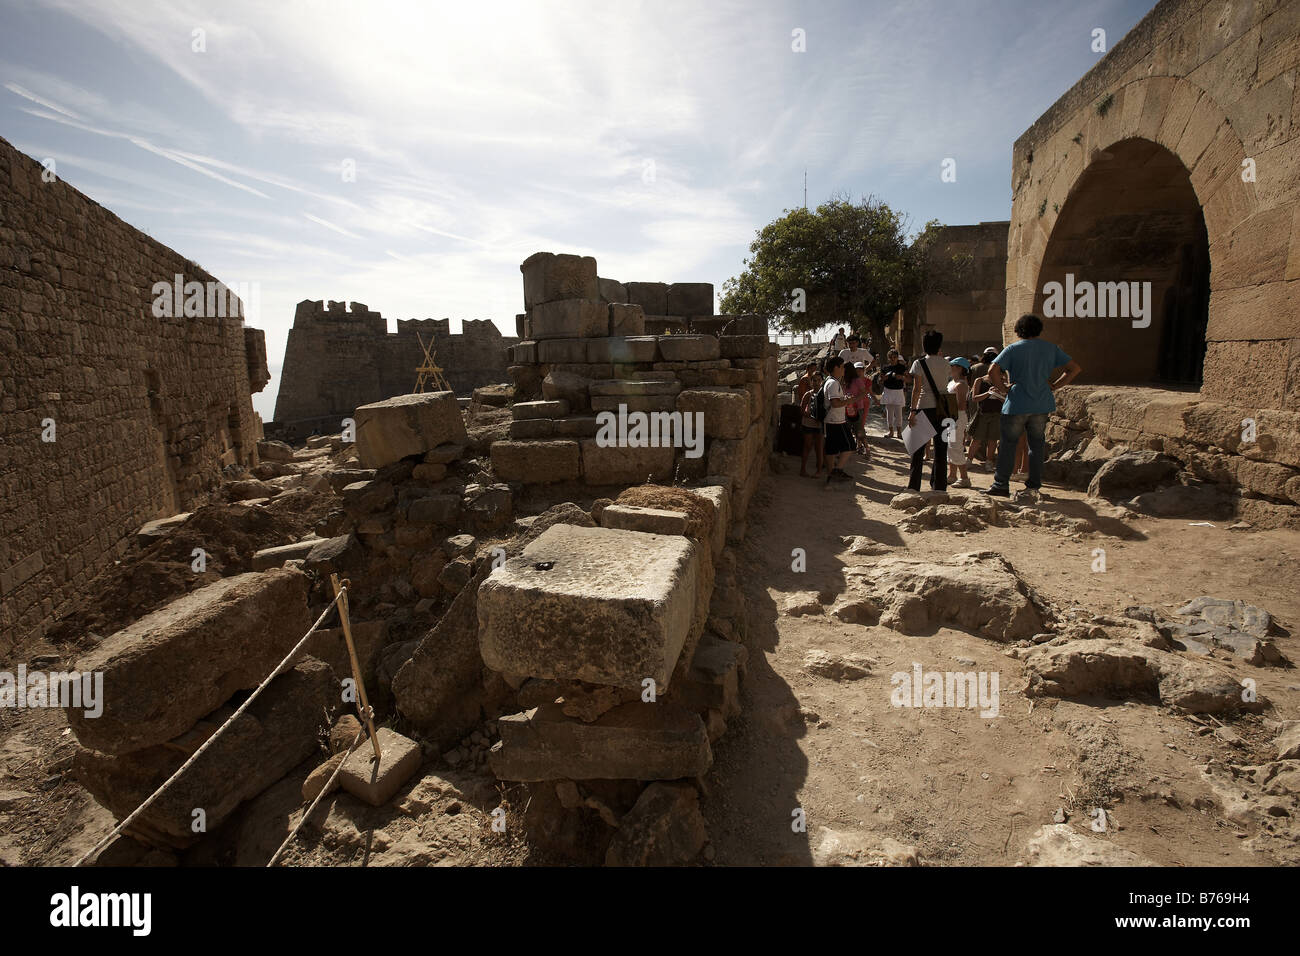 School children looking around the ruins of the Acropolis Lindos Island of Rhodes Greece - Stock Image